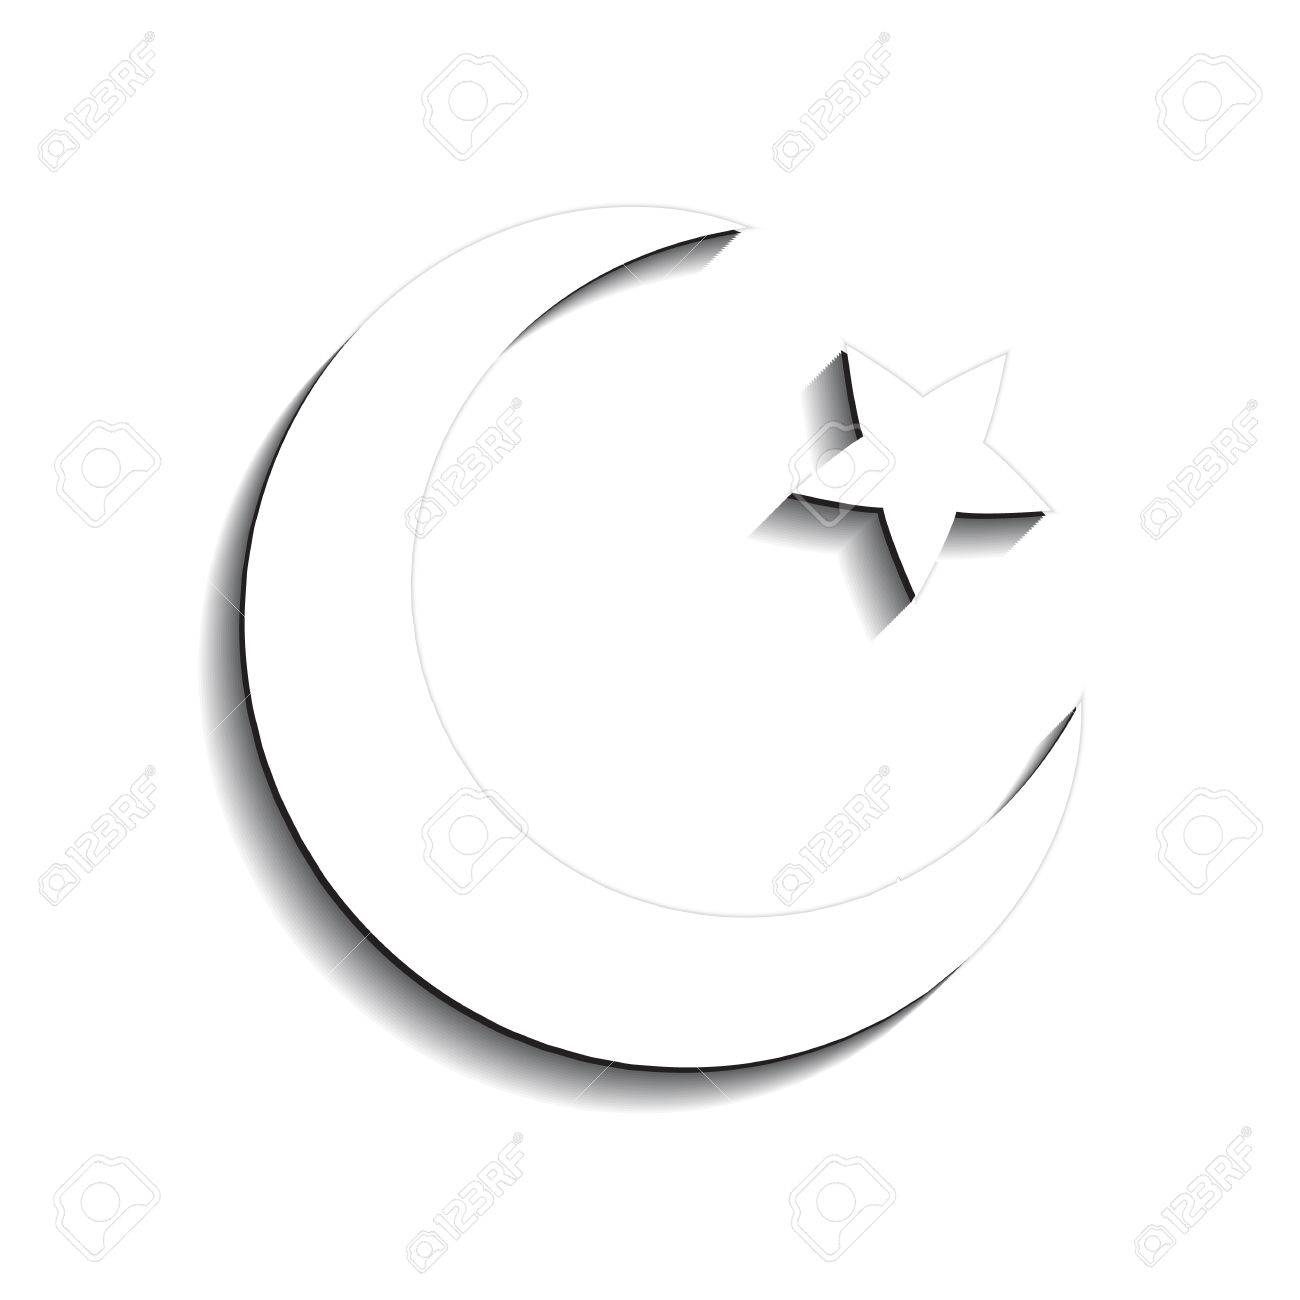 Star and crescent symbol of islam icon royalty free cliparts star and crescent symbol of islam icon stock vector 57867983 buycottarizona Gallery